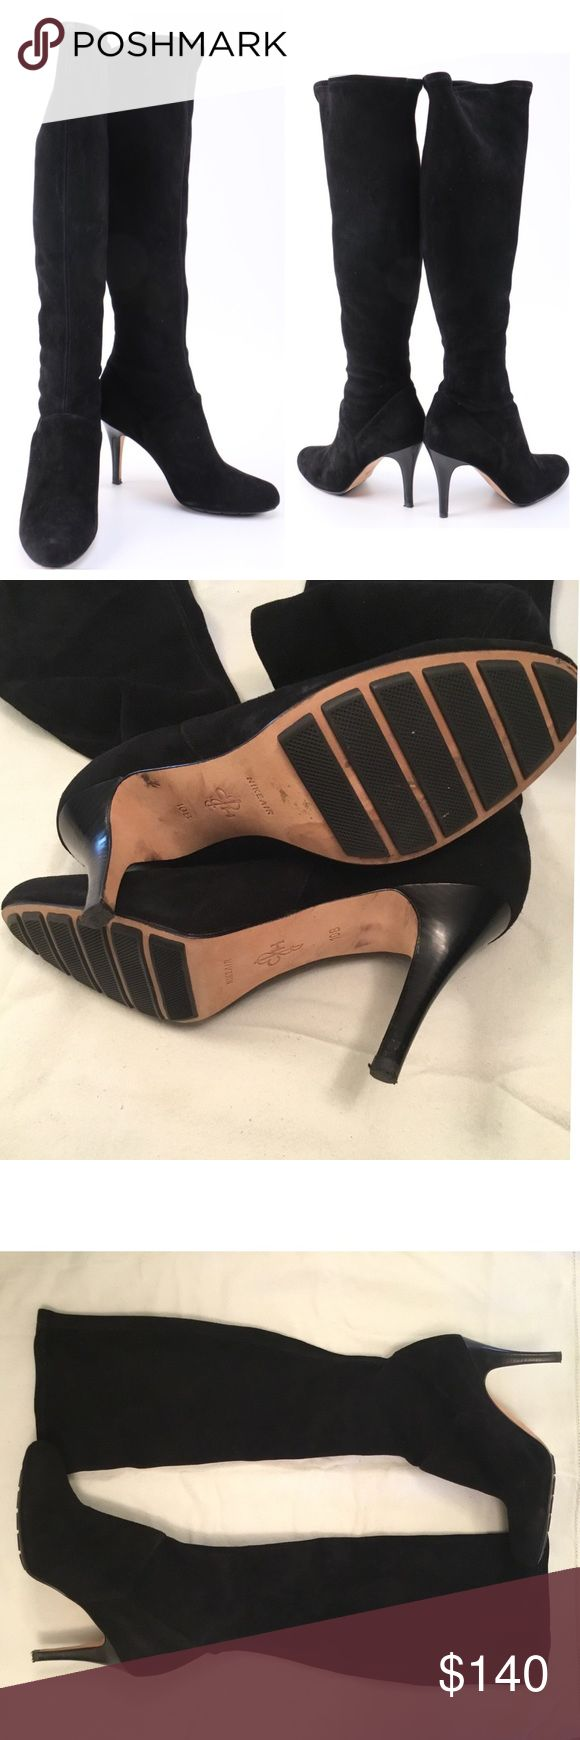 """Cole Haan Nike Air 10B Black Suede Boots Over the knee black suede boots, with an almond toe and 4"""" heels featuring Nike Air components.  Condition is very light wear, like new.  Size is 10B. Any questions please ask. Personal note bin anmm. Cole Haan Shoes Over the Knee Boots"""